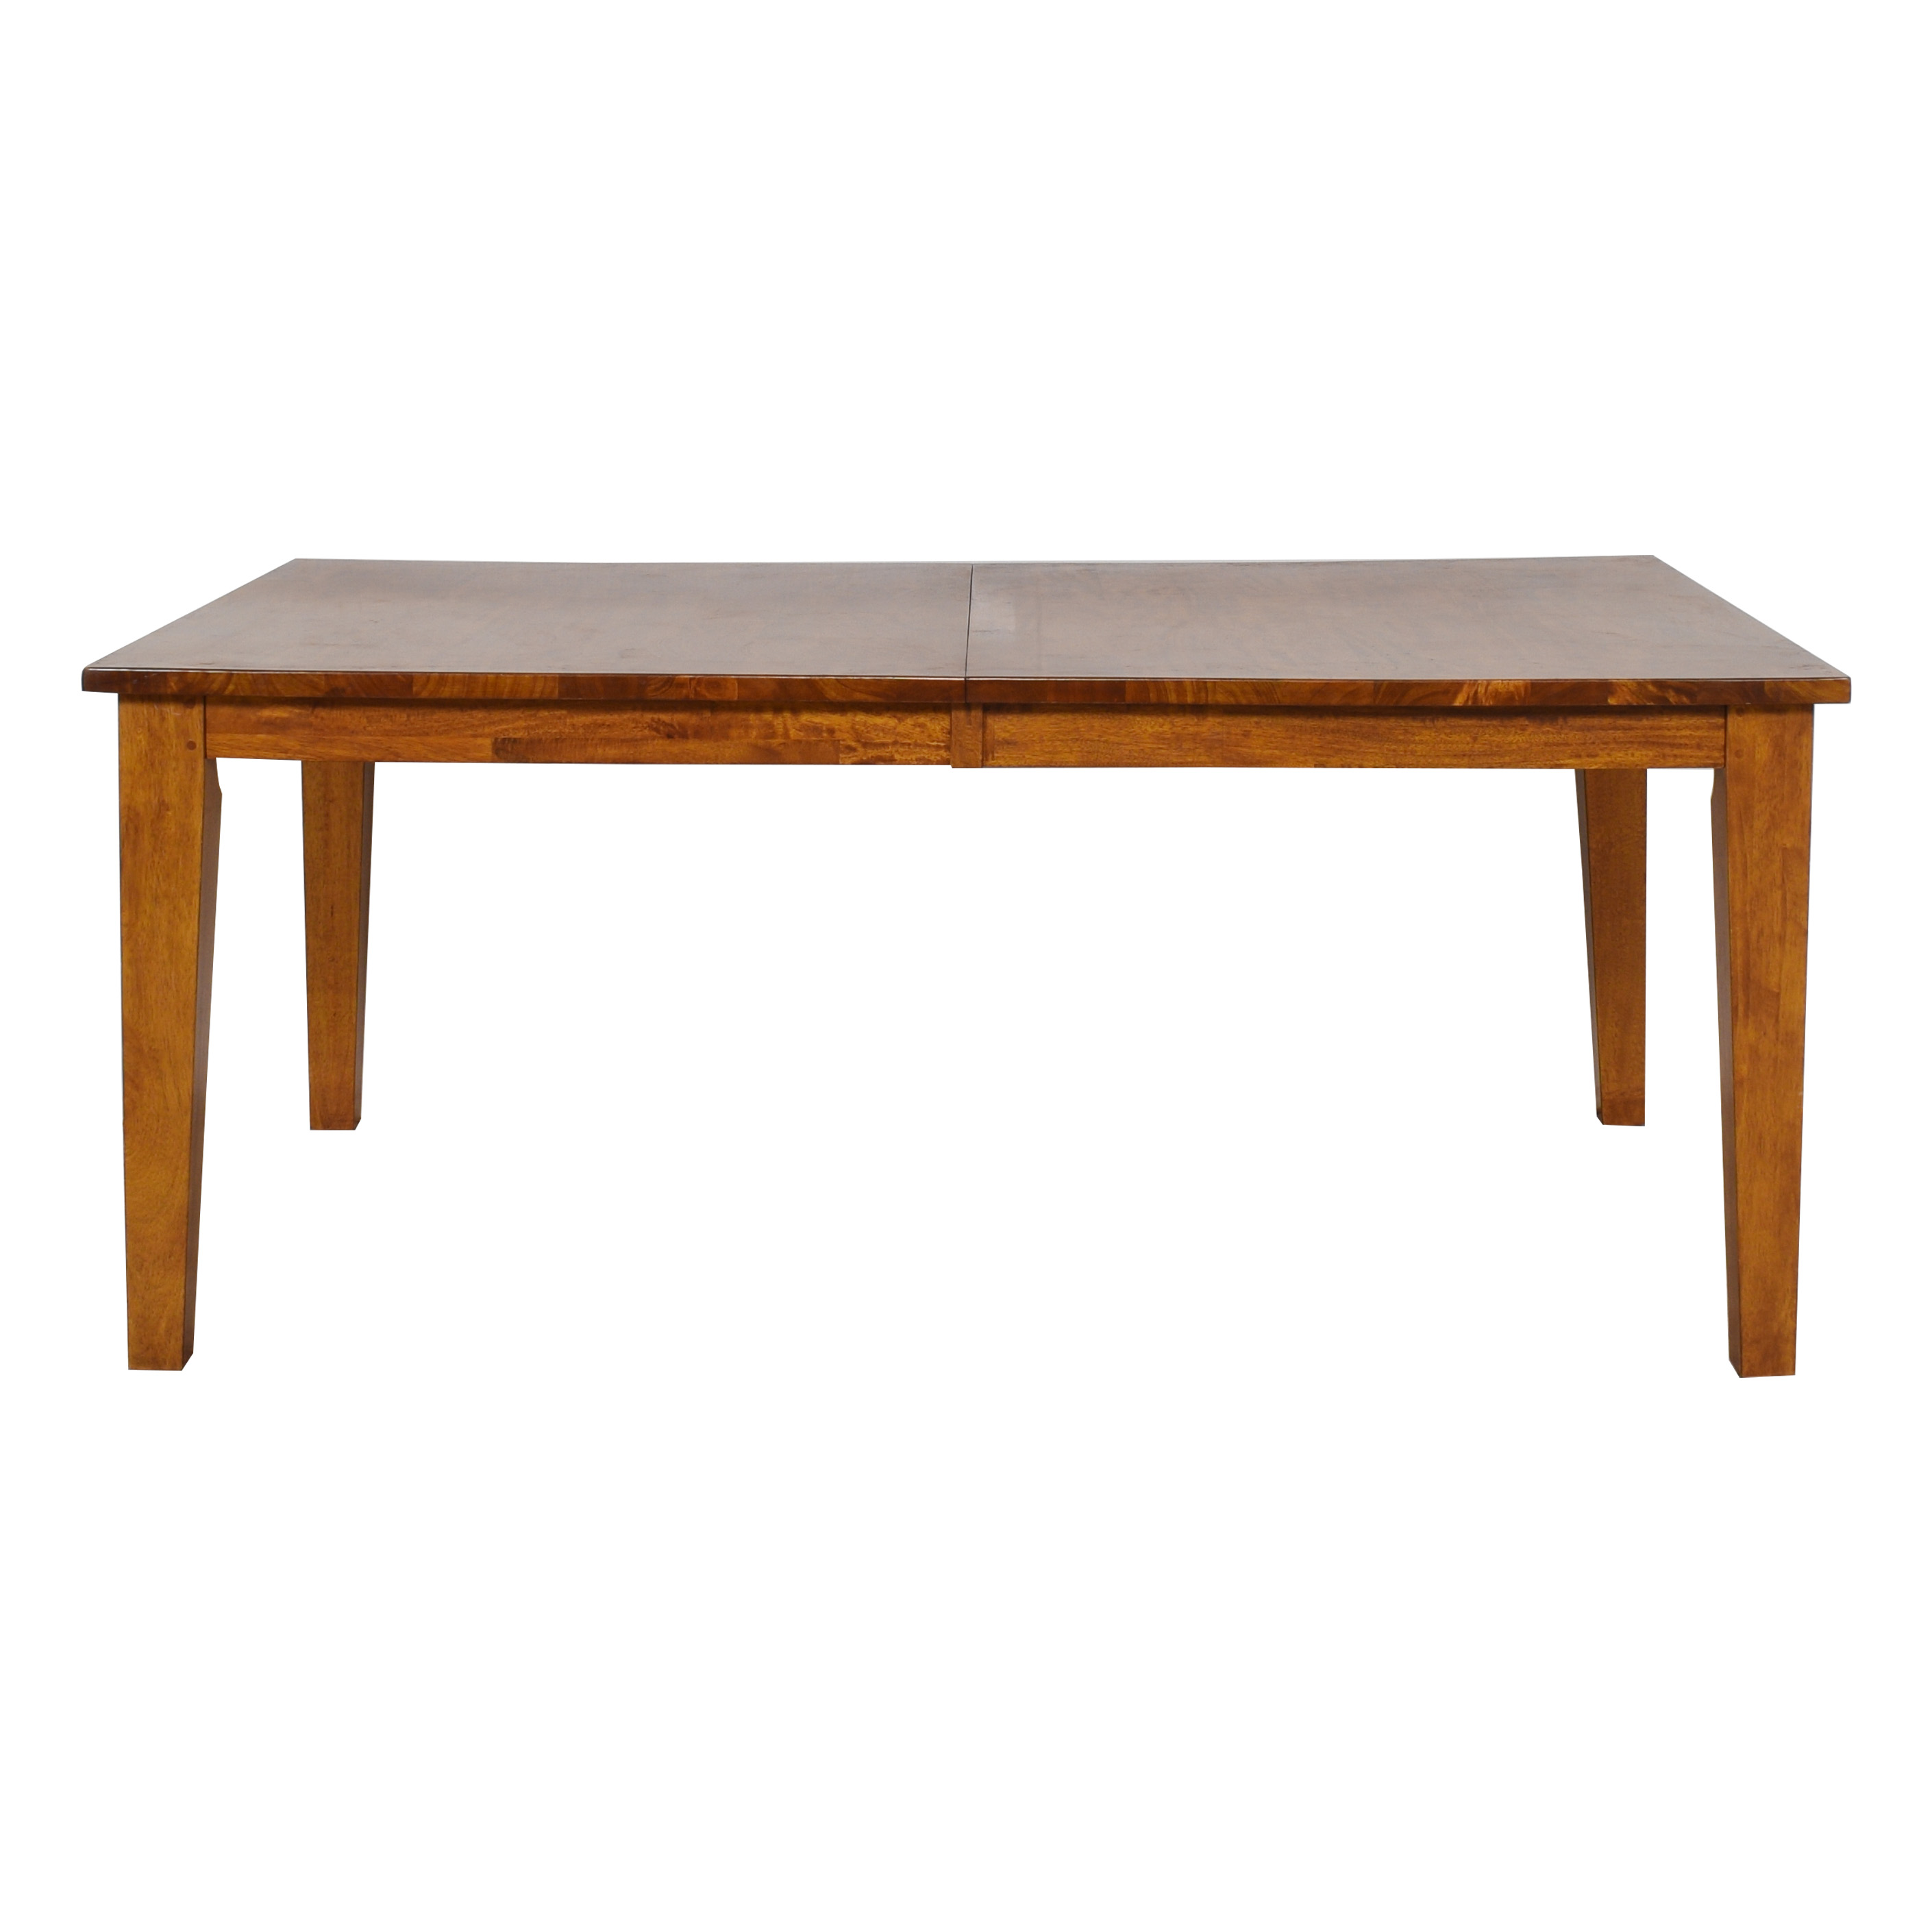 Klaussner Klaussner Mango Wood Extension Dining Table price